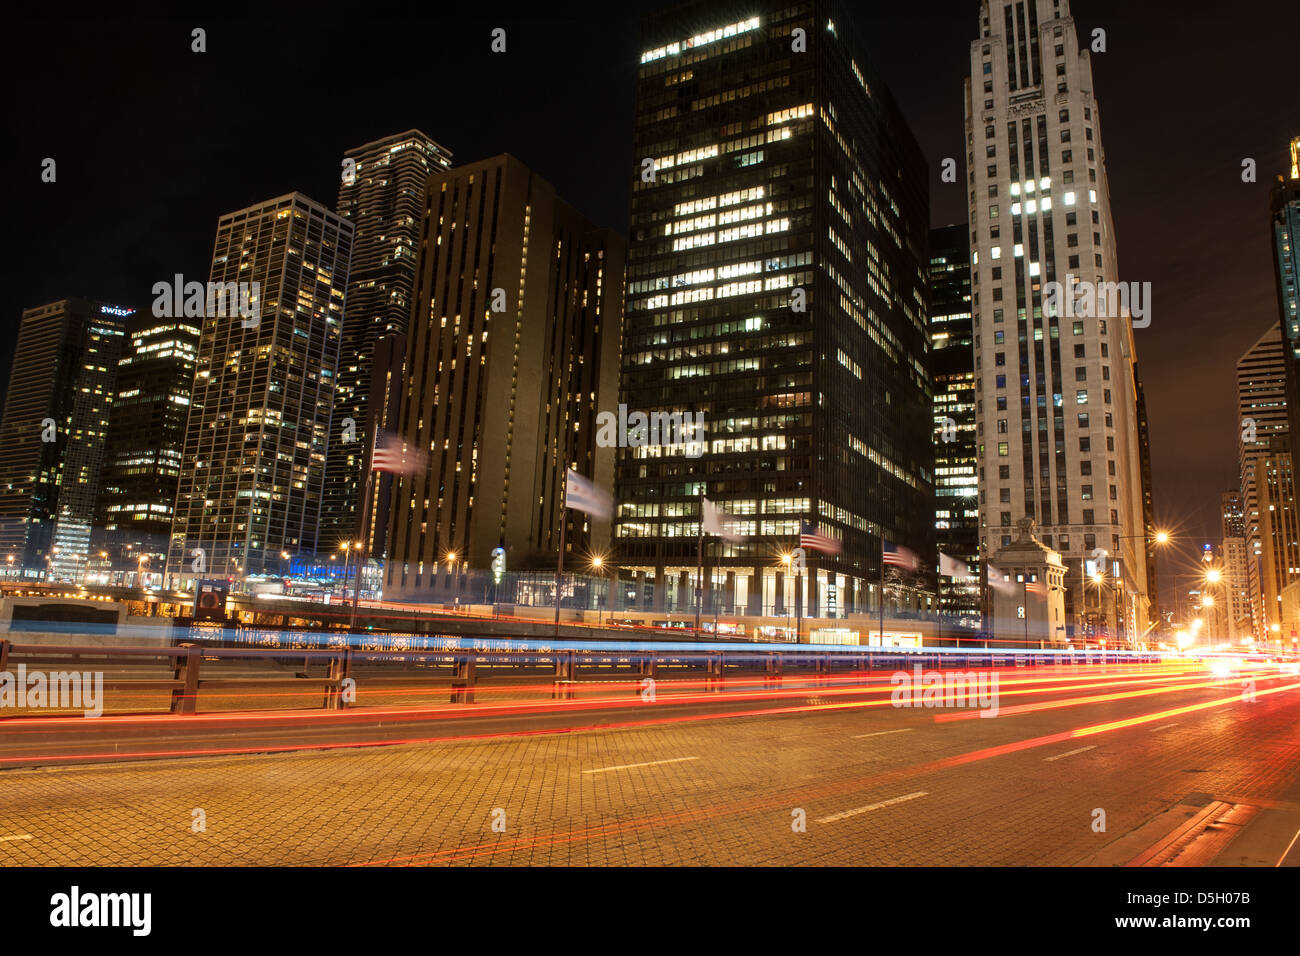 Night view of the Michigan Avenue Bridge, also known as DuSable Bridge, in Chicago - Stock Image